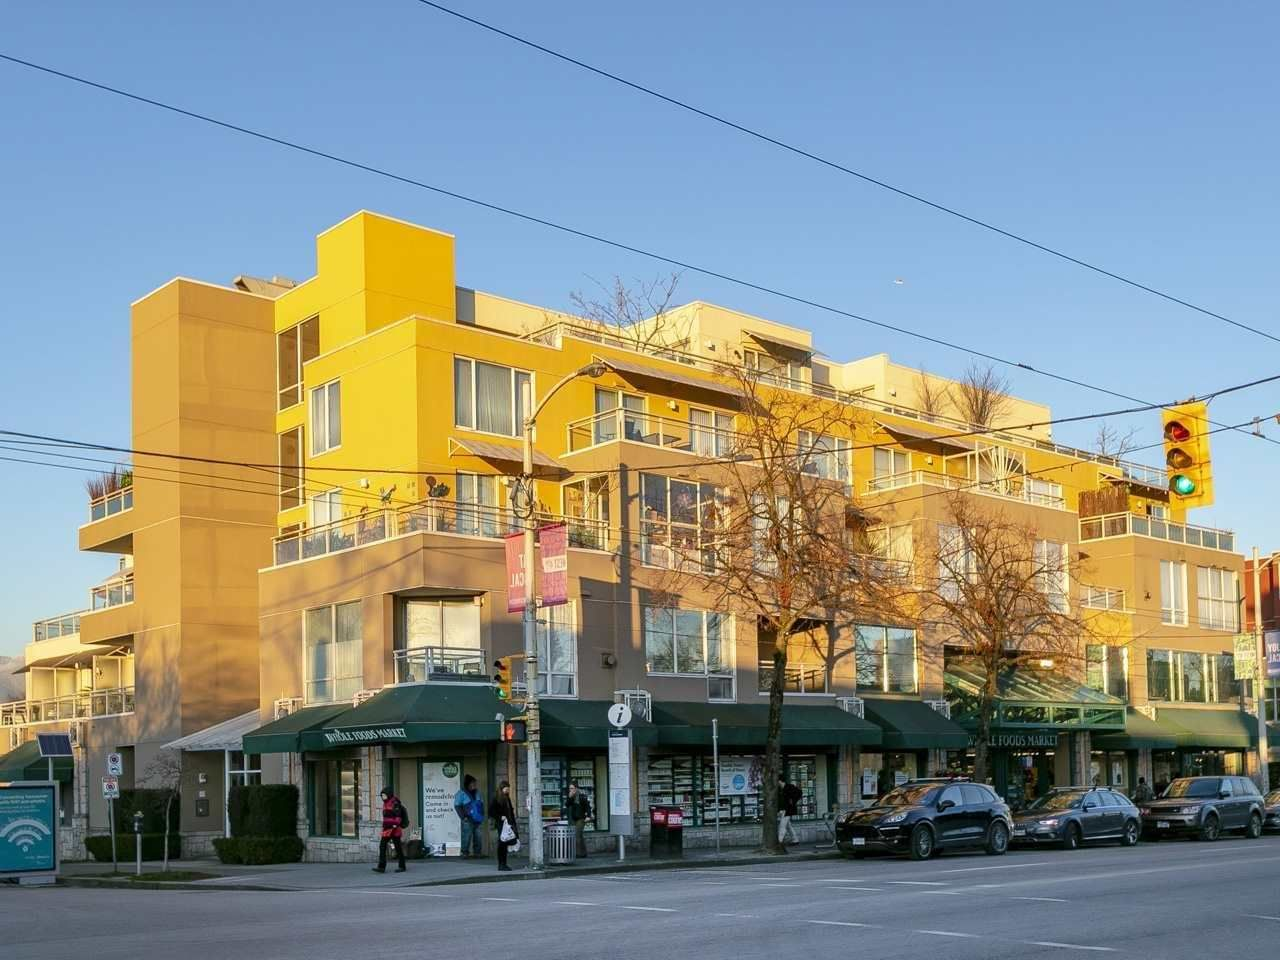 """Main Photo: 403 1978 VINE Street in Vancouver: Kitsilano Condo for sale in """"THE CAPERS BUILDING"""" (Vancouver West)  : MLS®# R2593406"""